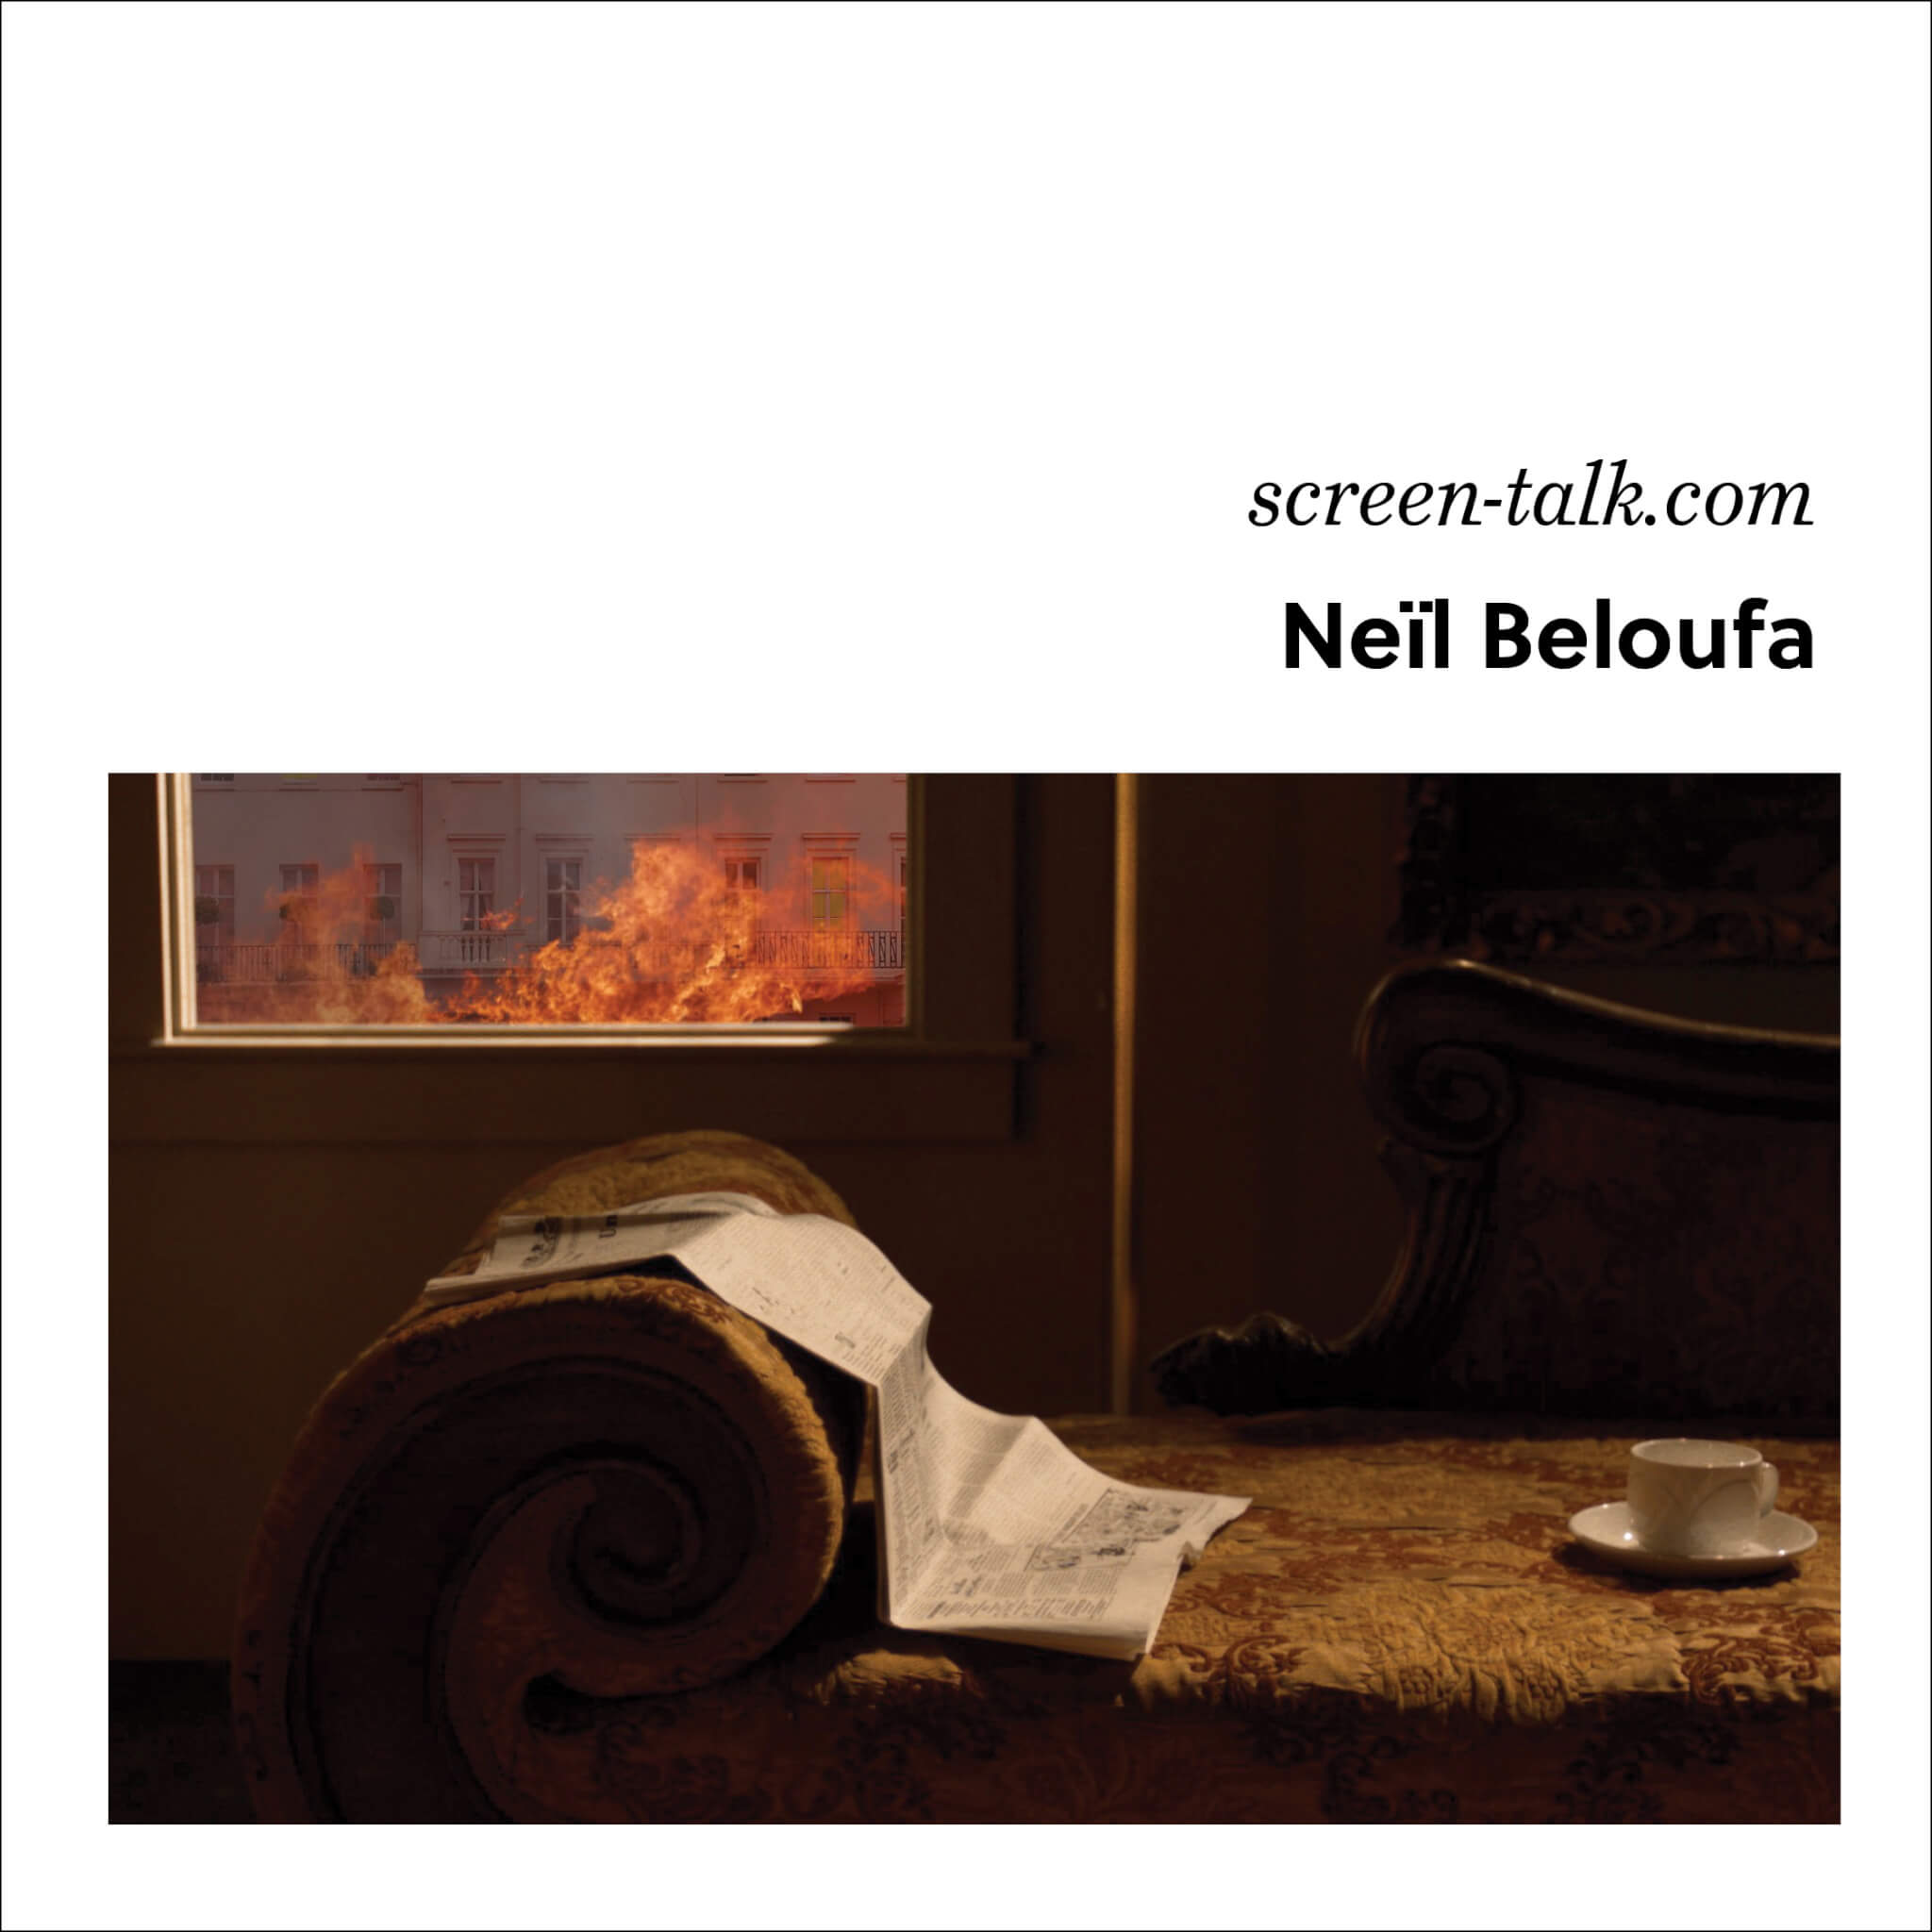 Week 3: Neil Beloufa